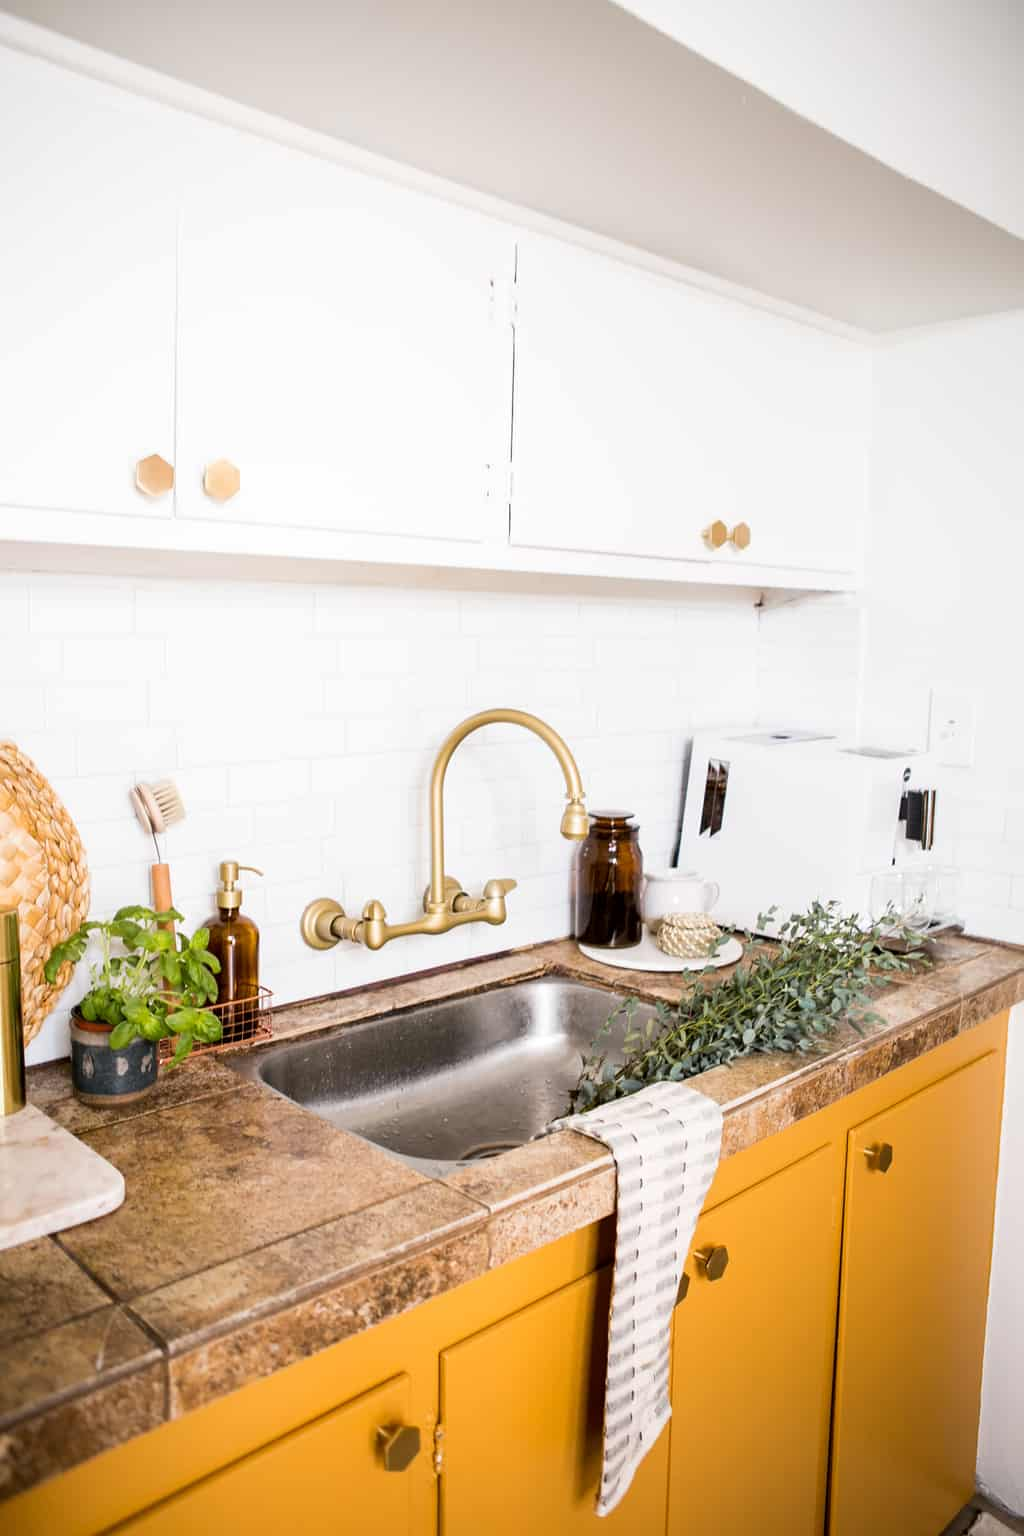 Gold faucet with newly painted yellow mustard cabinets with new gold hardware.